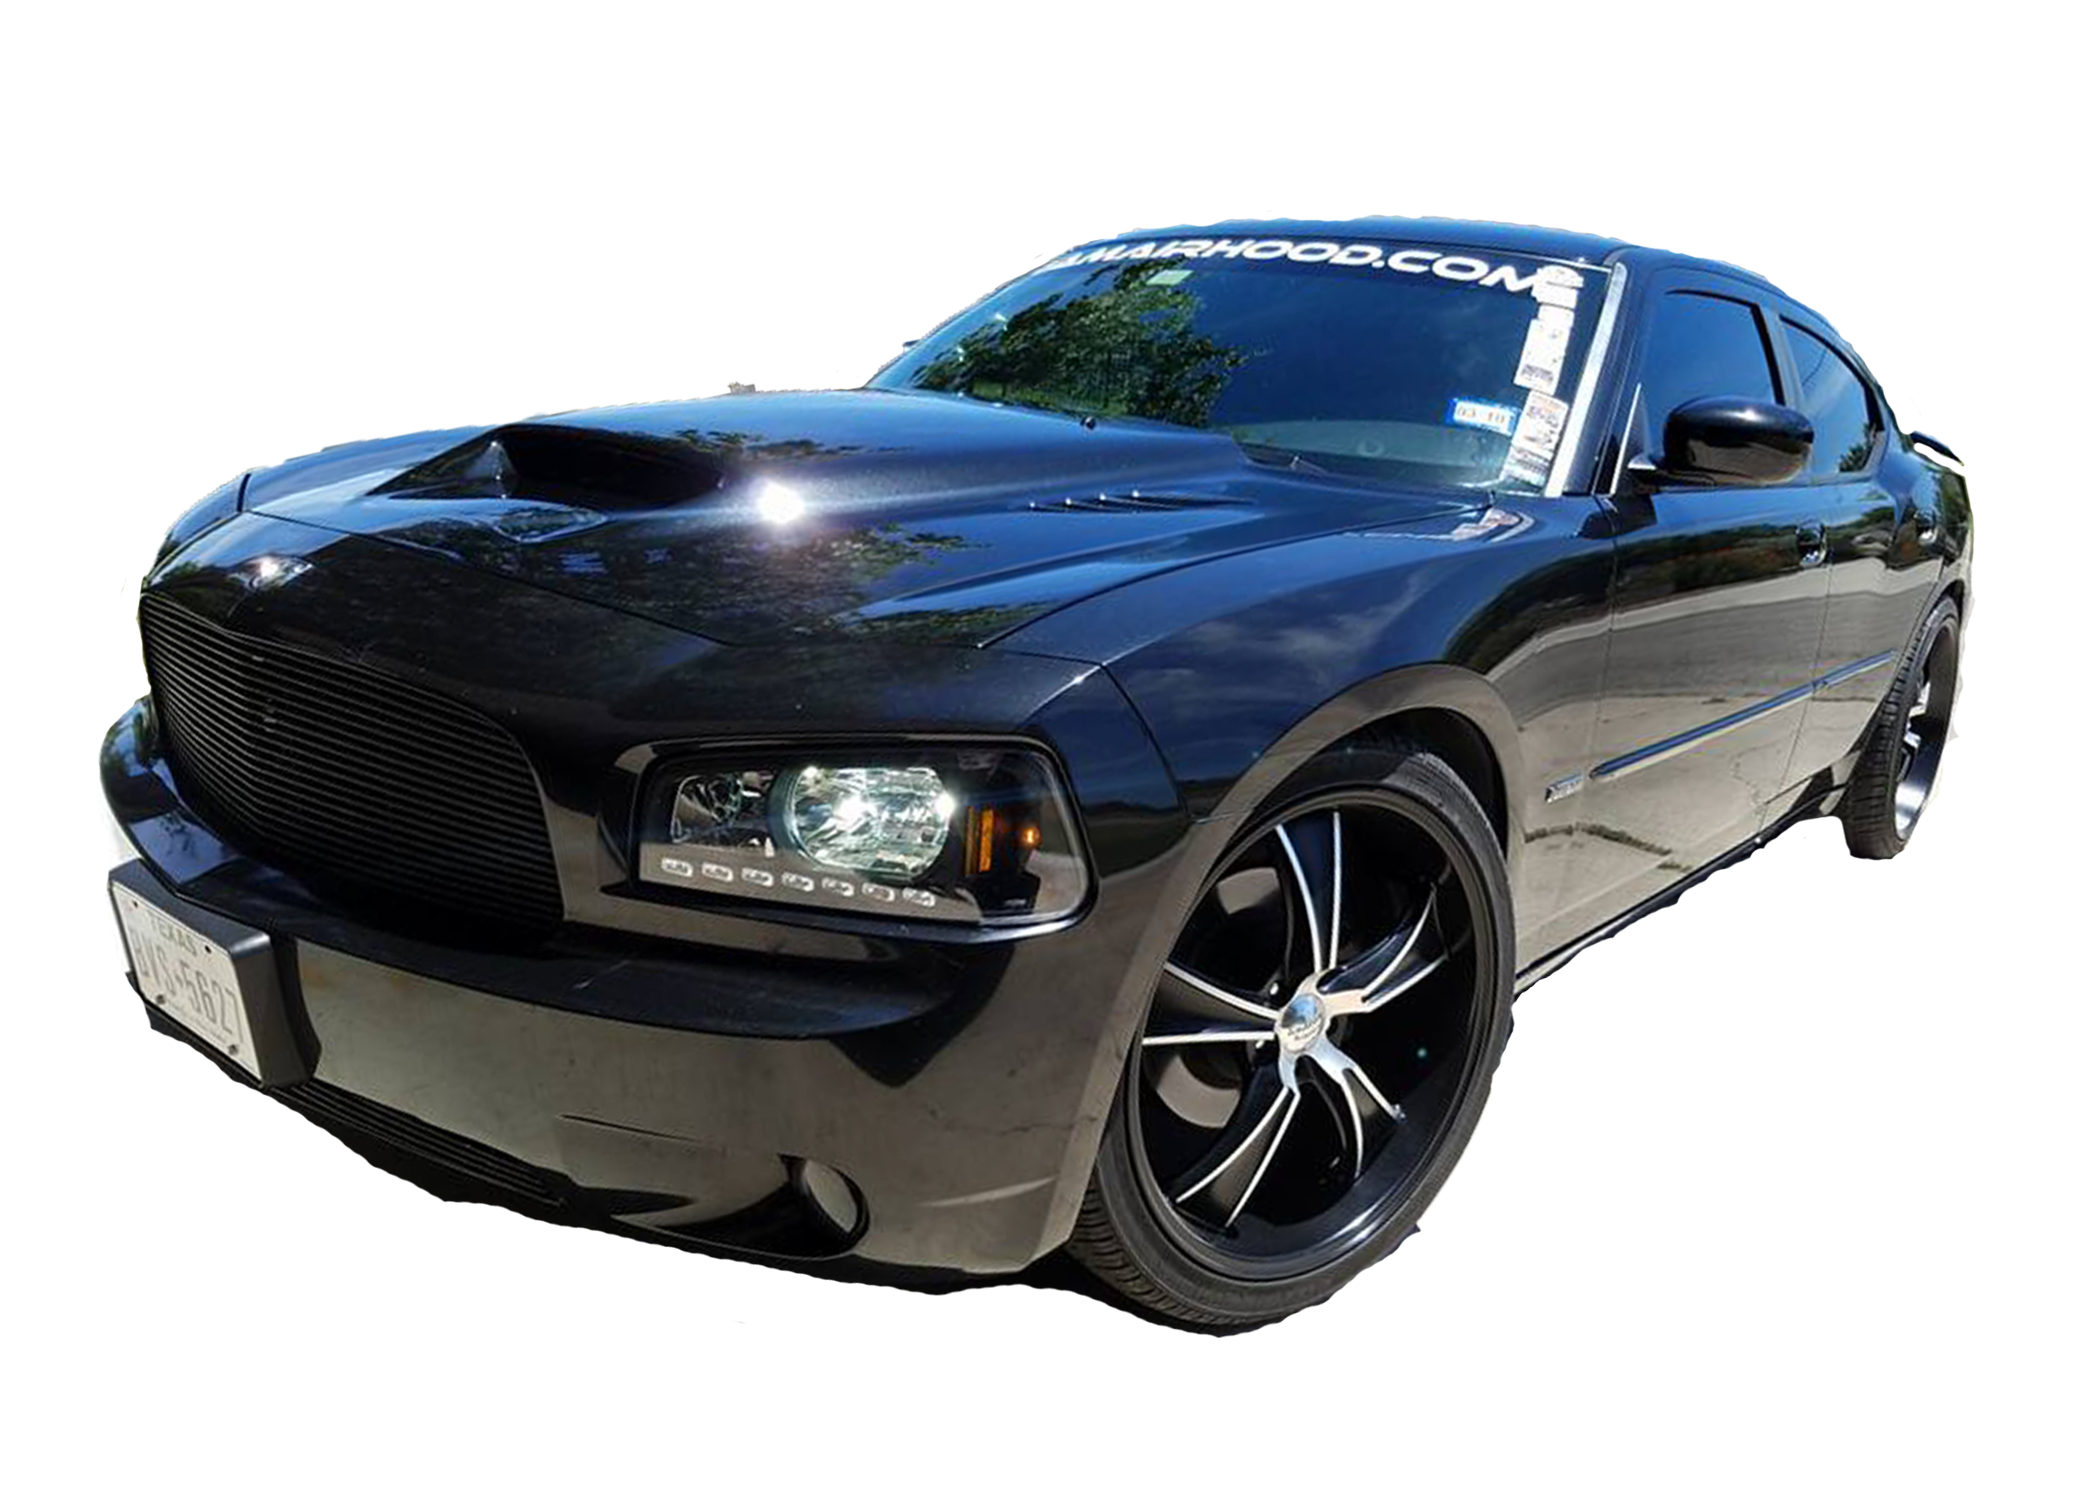 2005 2010 dodge charger ram air hood ram air hood. Black Bedroom Furniture Sets. Home Design Ideas